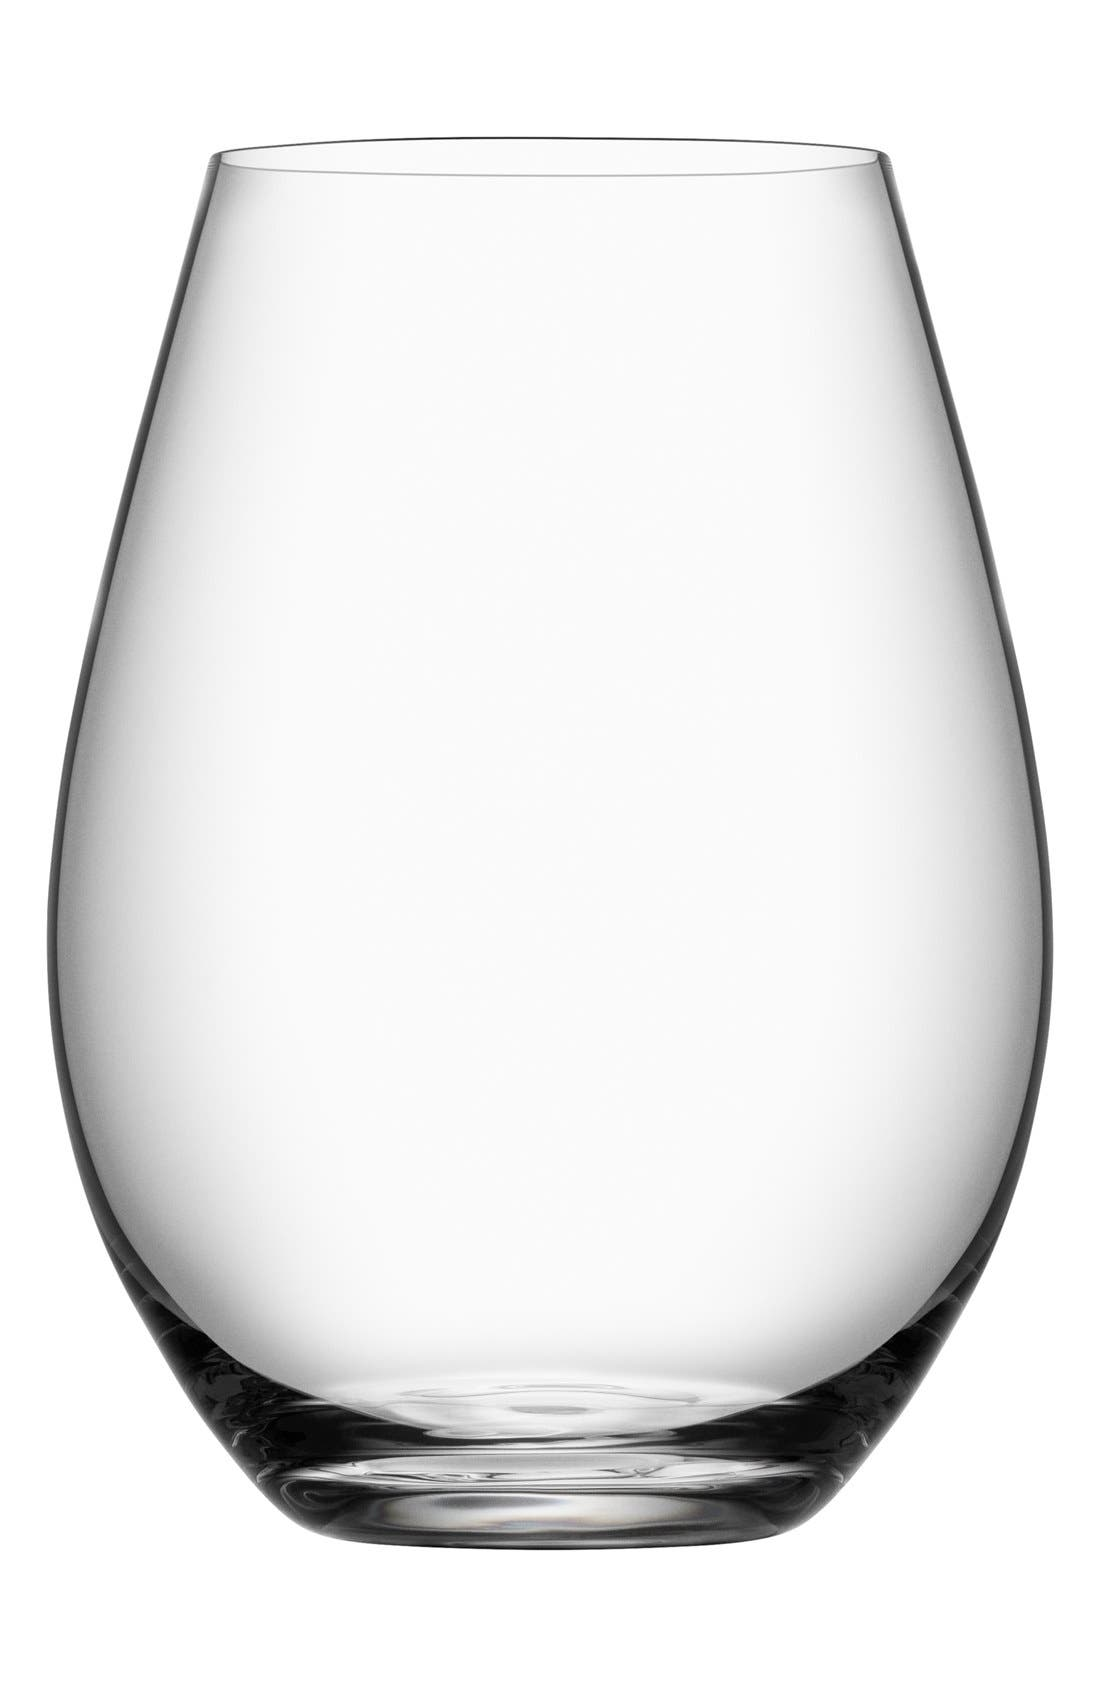 'More' Stemless Wine Glasses,                         Main,                         color,